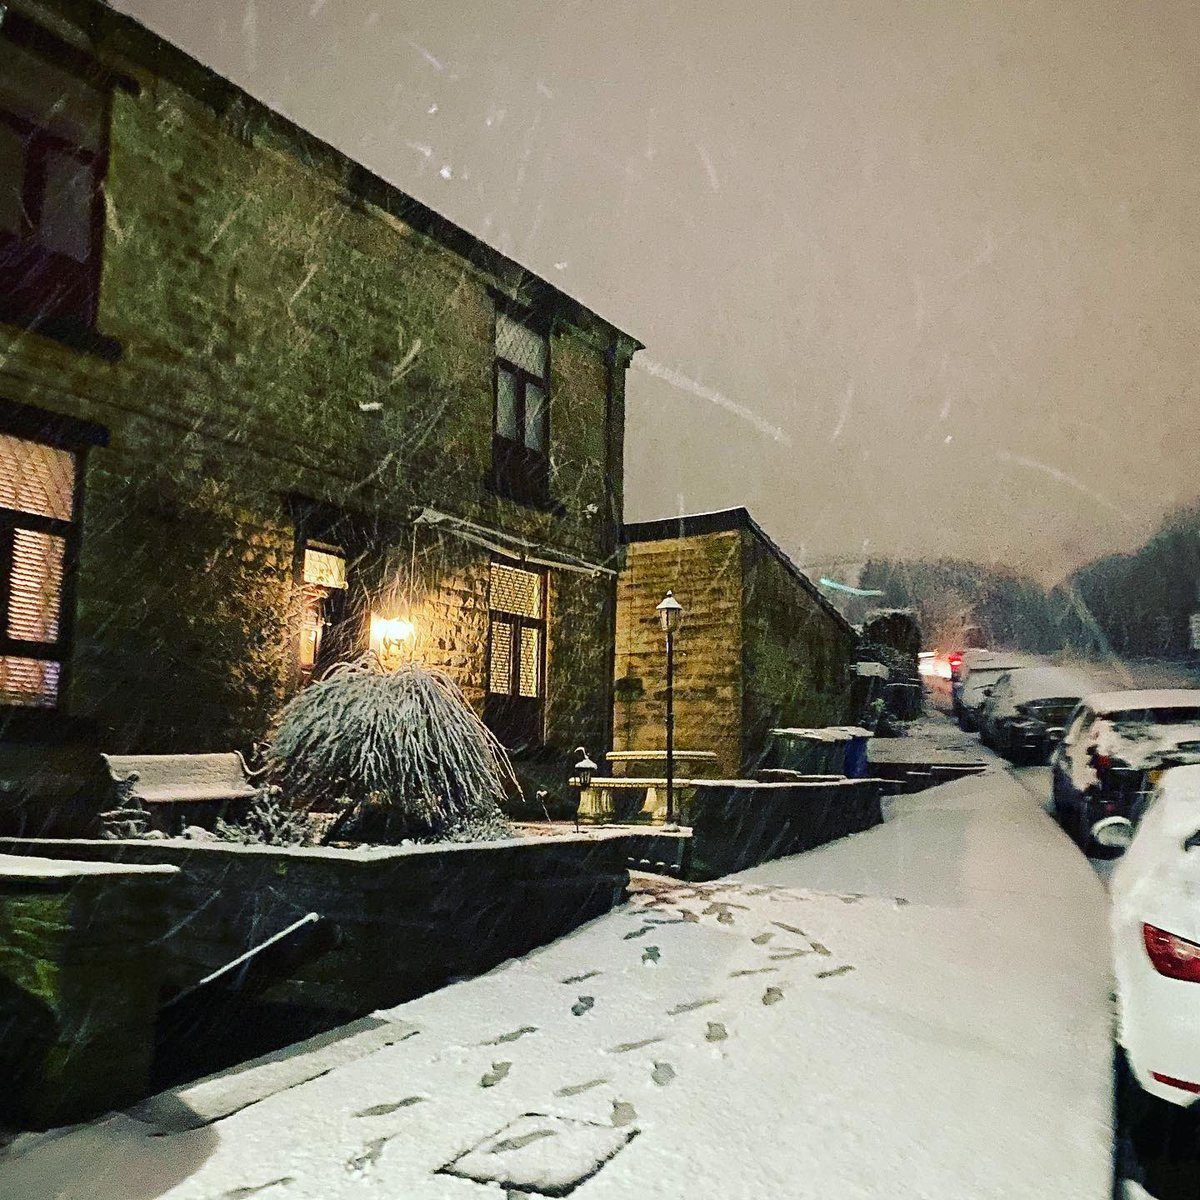 So at 6pm this evening it was raining and every where was sodden wet. Fast forward to 9.30pm and there's snow, coming down fairly quick and it's sticking! ❄️⛷☃️⛄️🌨🏂🏔 #snow #rossendale #haslingden #graneroad #weather #stormchristoph https://t.co/M6I9a8iDrT